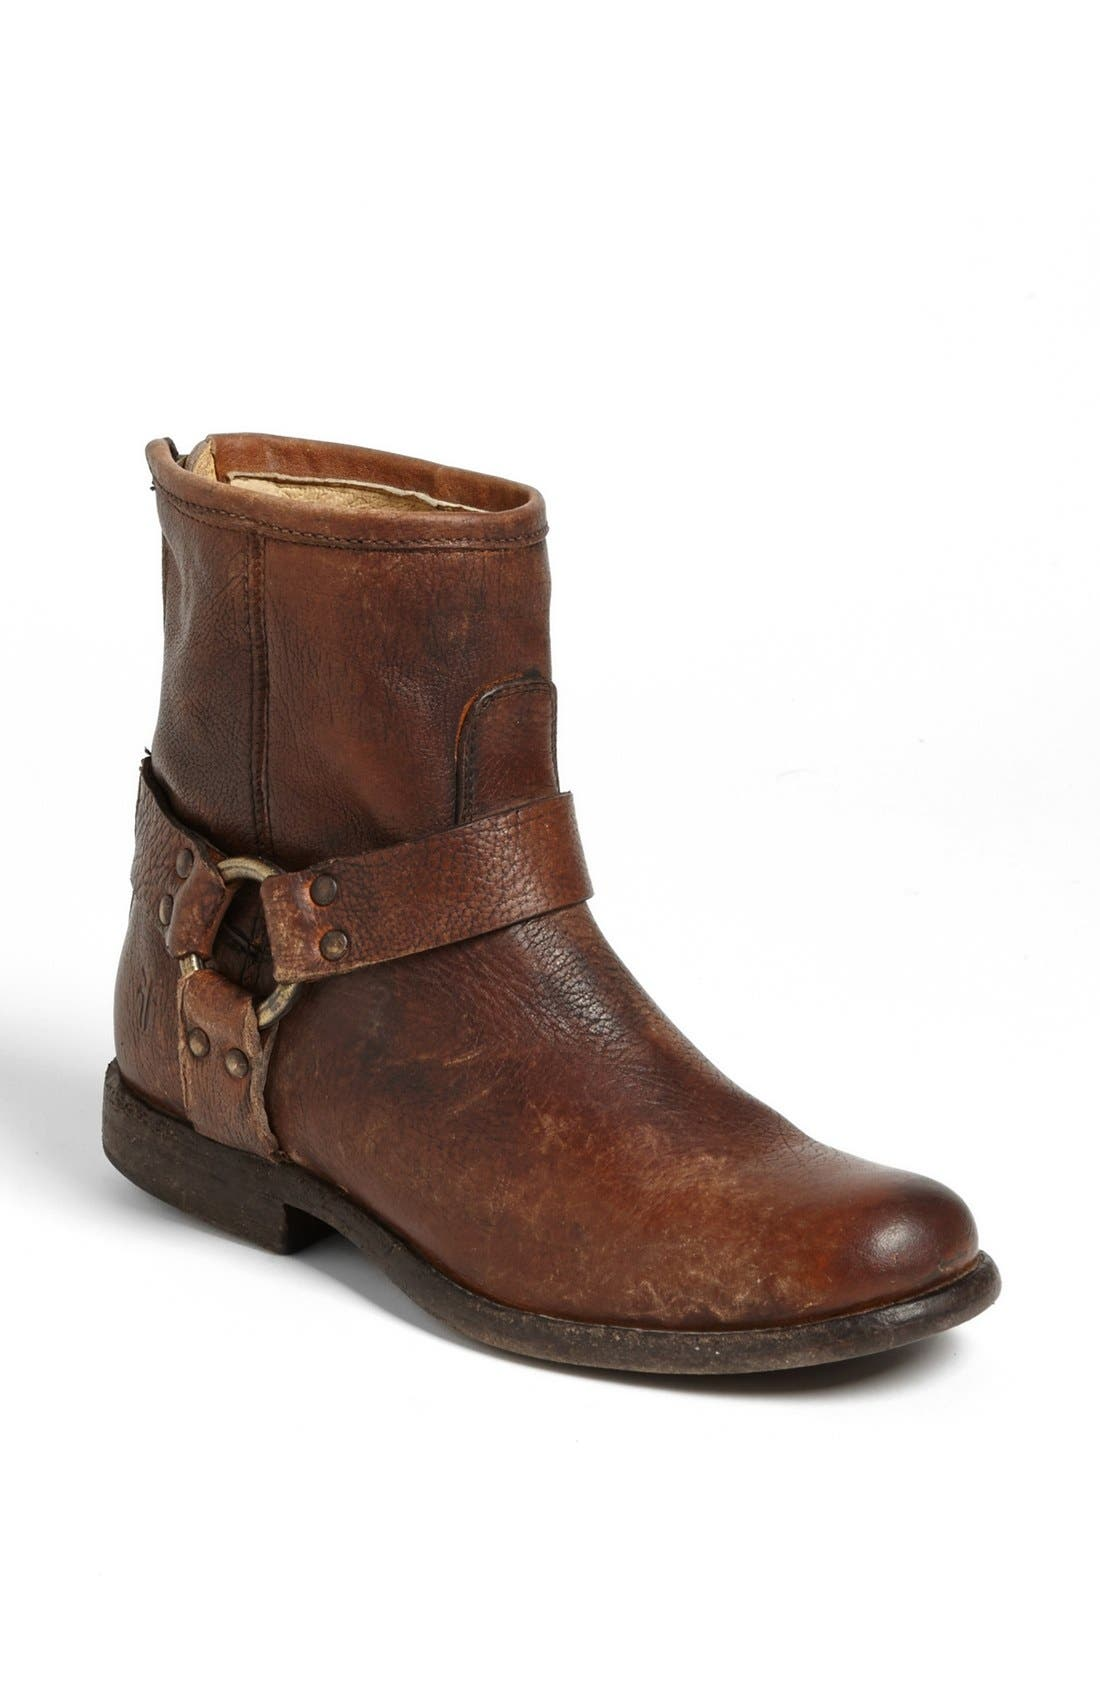 Alternate Image 1 Selected - Frye 'Phillip' Bootie